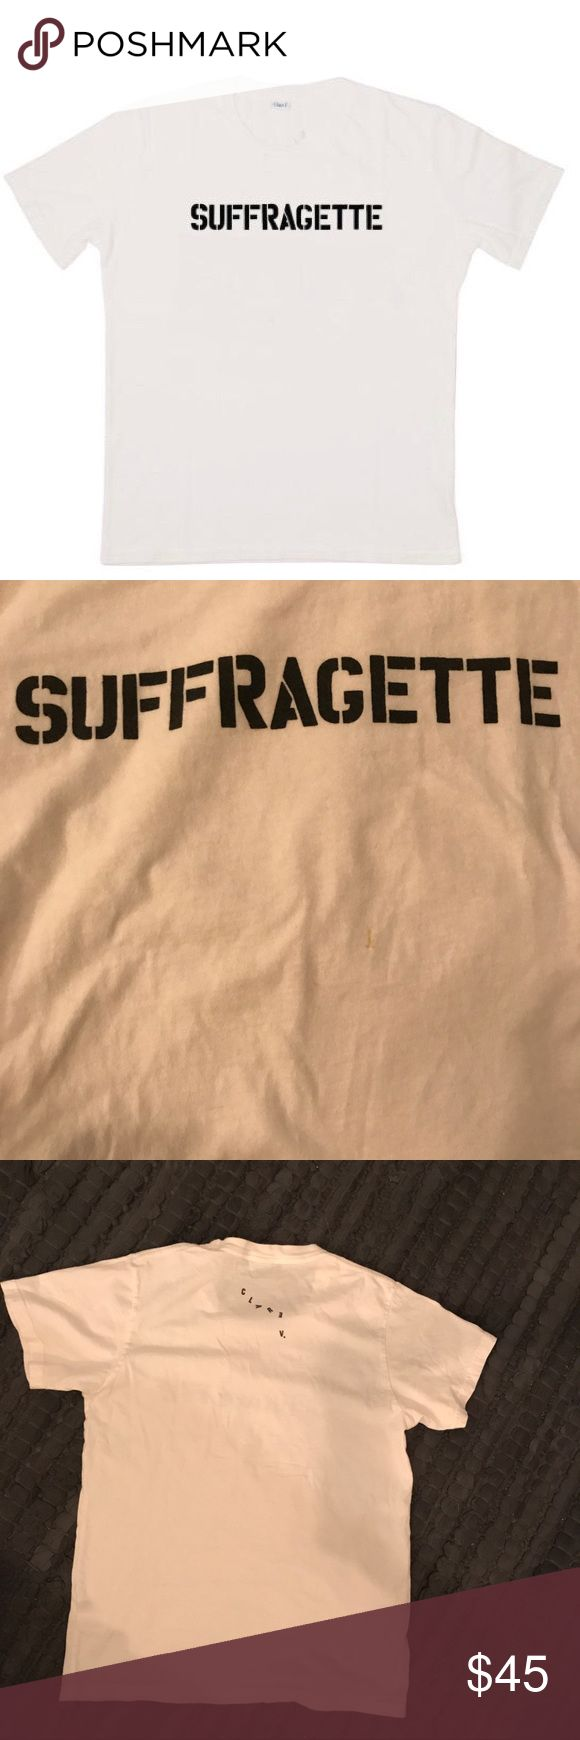 """Clare Vivier XS """"Suffragette"""" tee Clare Vivier XS white """"Suffragette"""" tee, limited edition. There is a small vertical yellow line about 1 cm on the front of the tee (see photo) - Clare V gave me a discount when I originally purchased this because for some reason all of the XS tees in their warehouse had this mark. I have the email correspondence as I purchased this online Clare Vivier Tops Tees - Short Sleeve"""